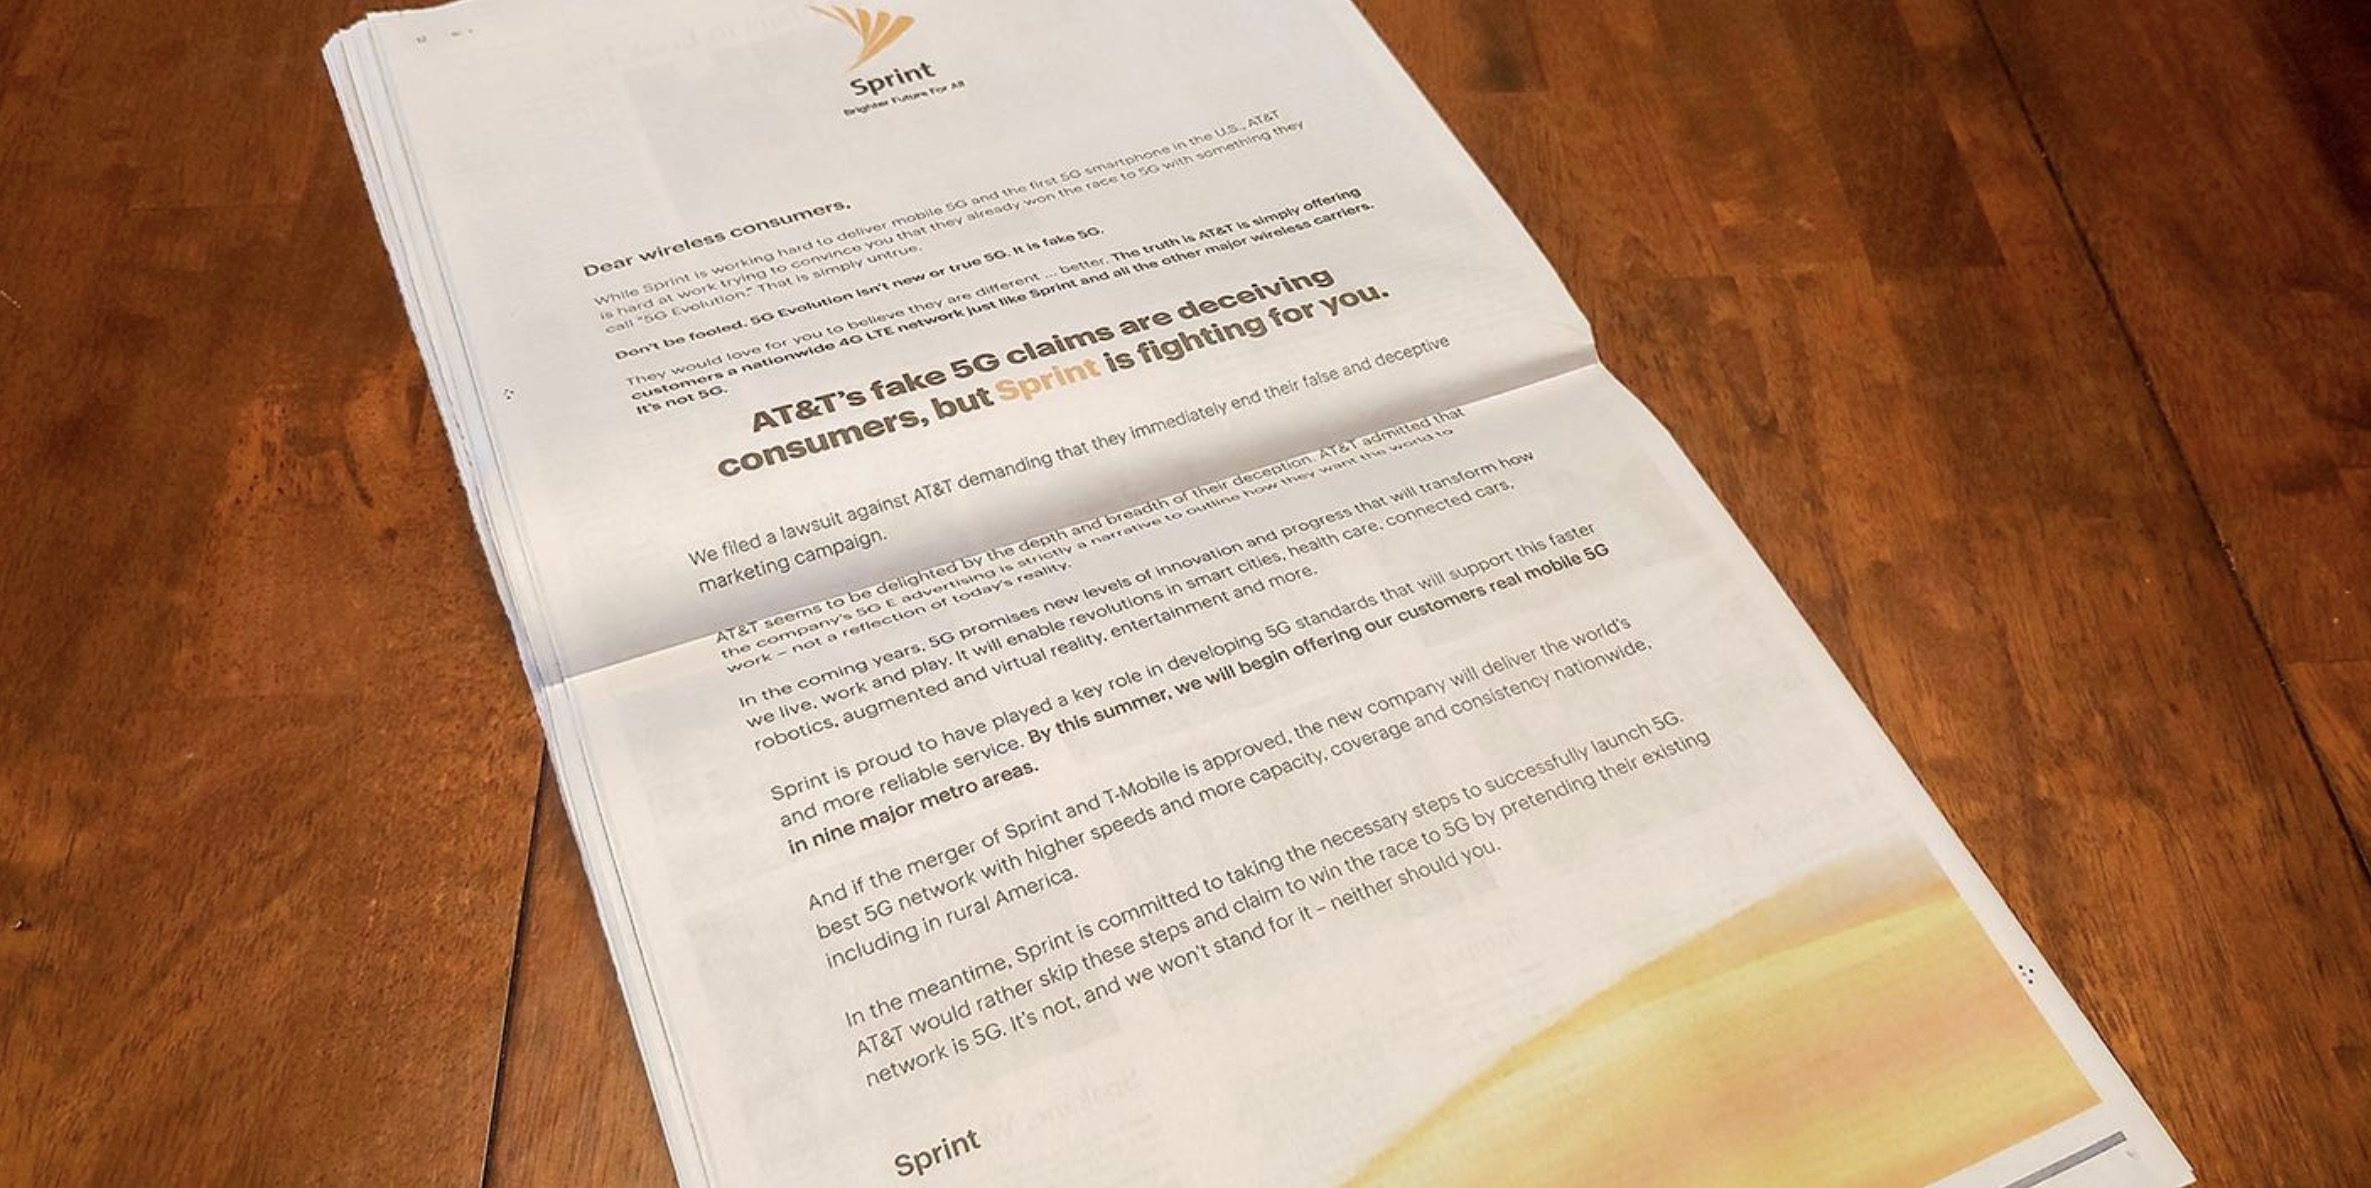 Att Perks At Work >> Sprint Steps Up Fight Against At T S Fake 5g With Full Page Sunday